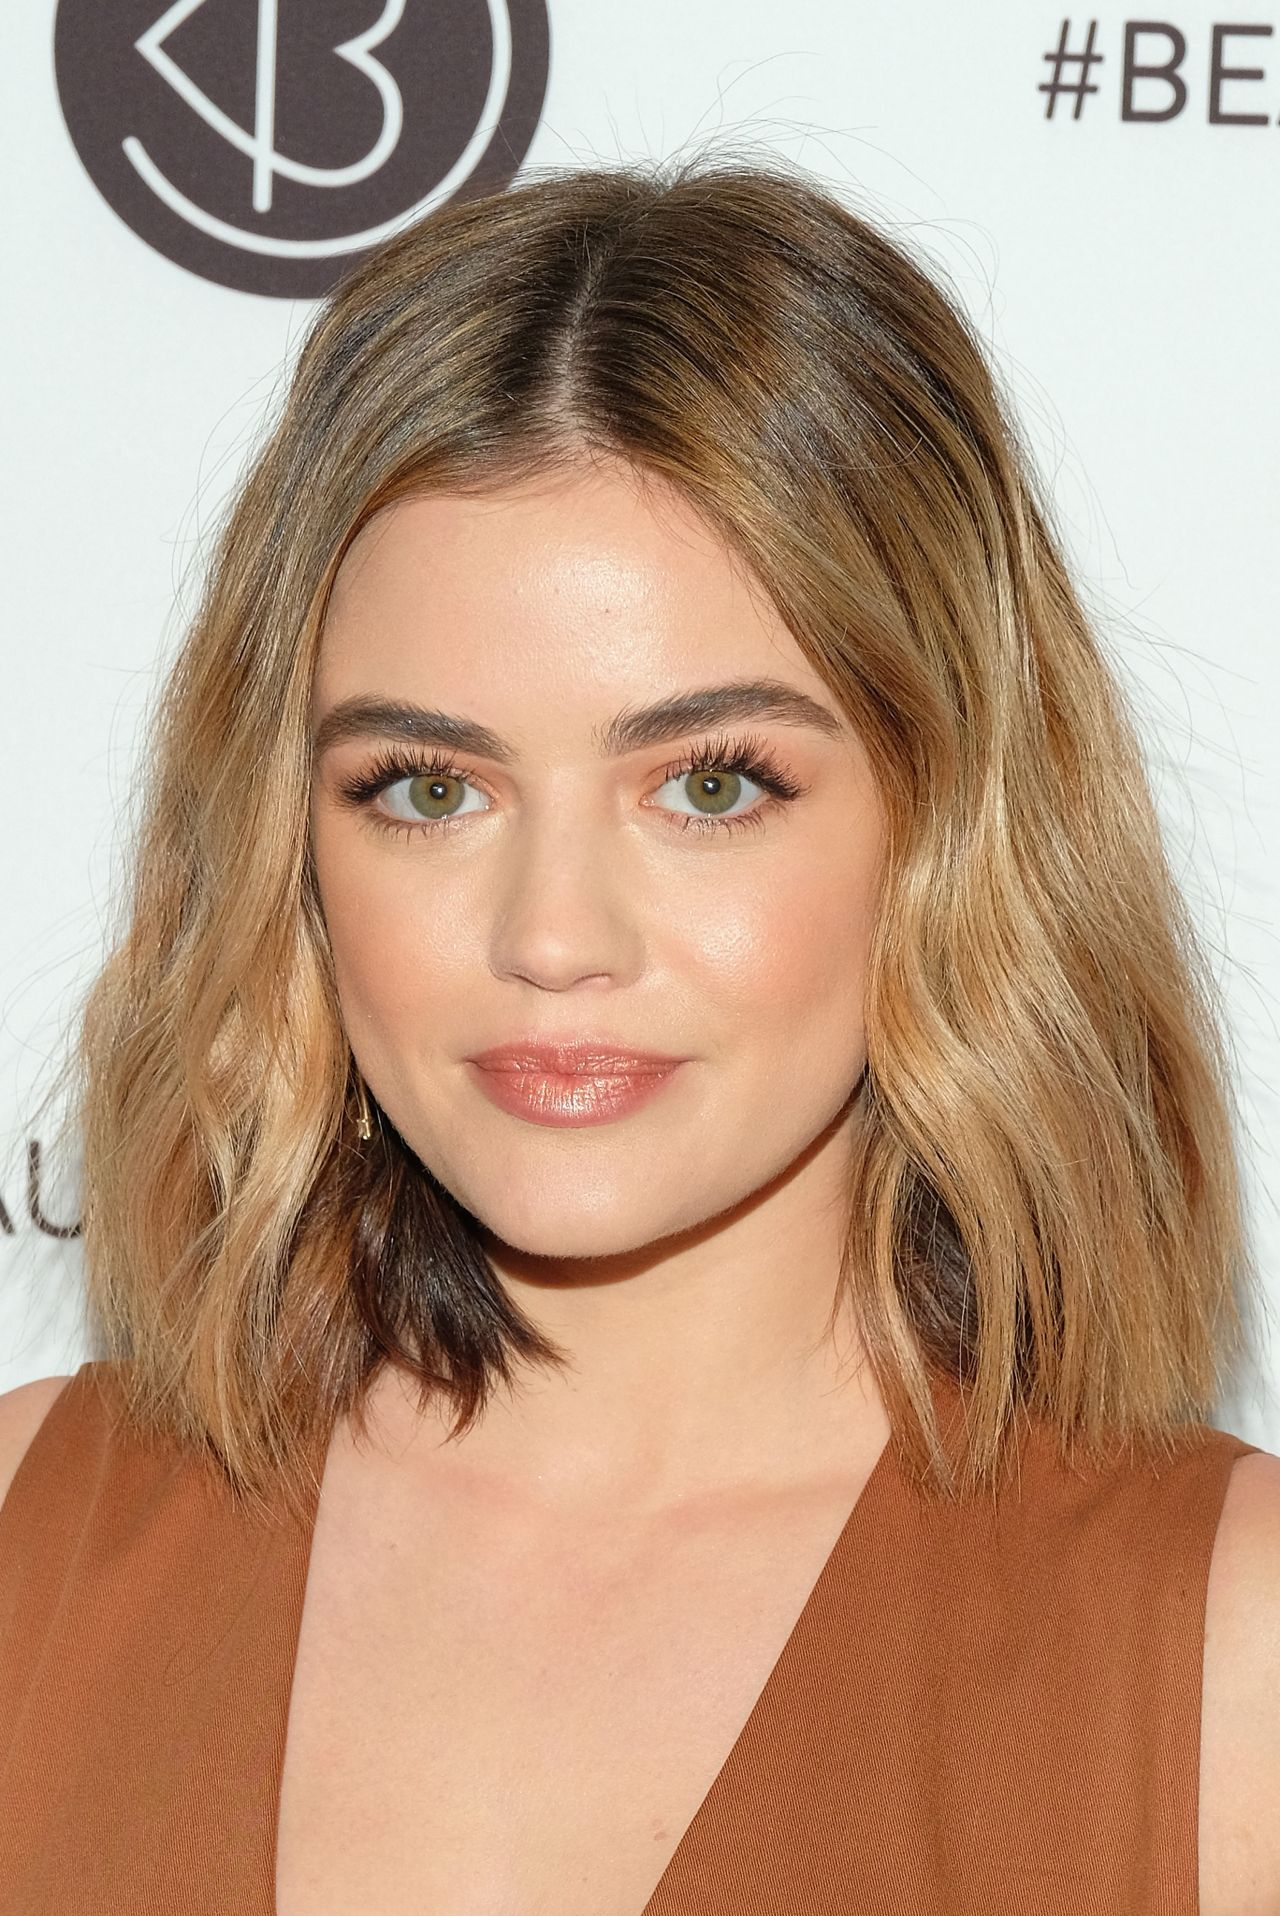 Lucy Hale BeautyCon Festival In NYC 04212018